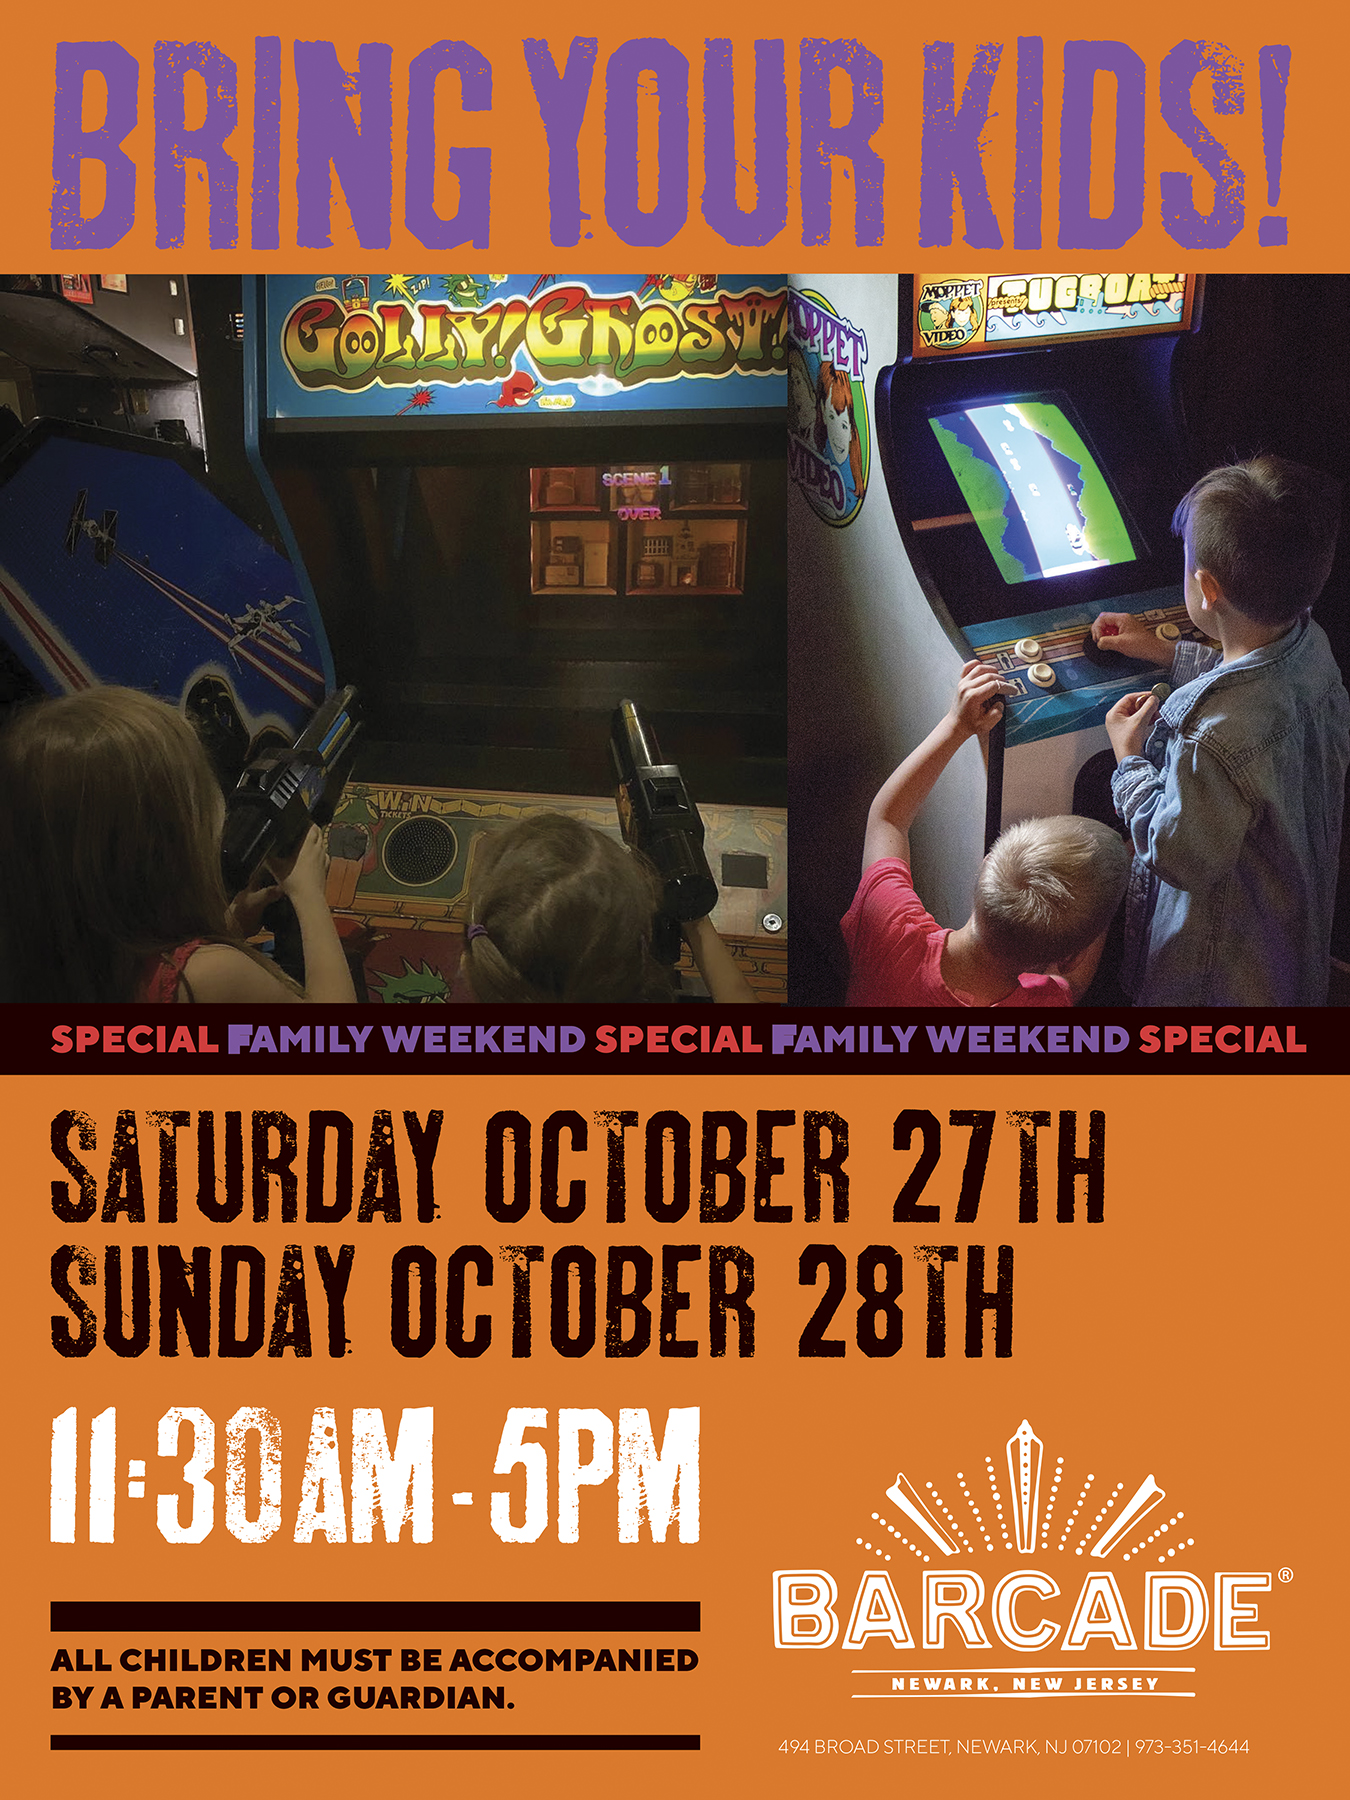 Barcade® Family Weekend 11:30AM to 5PM — October 27th and 28th, 2018 in Newark, NJ only